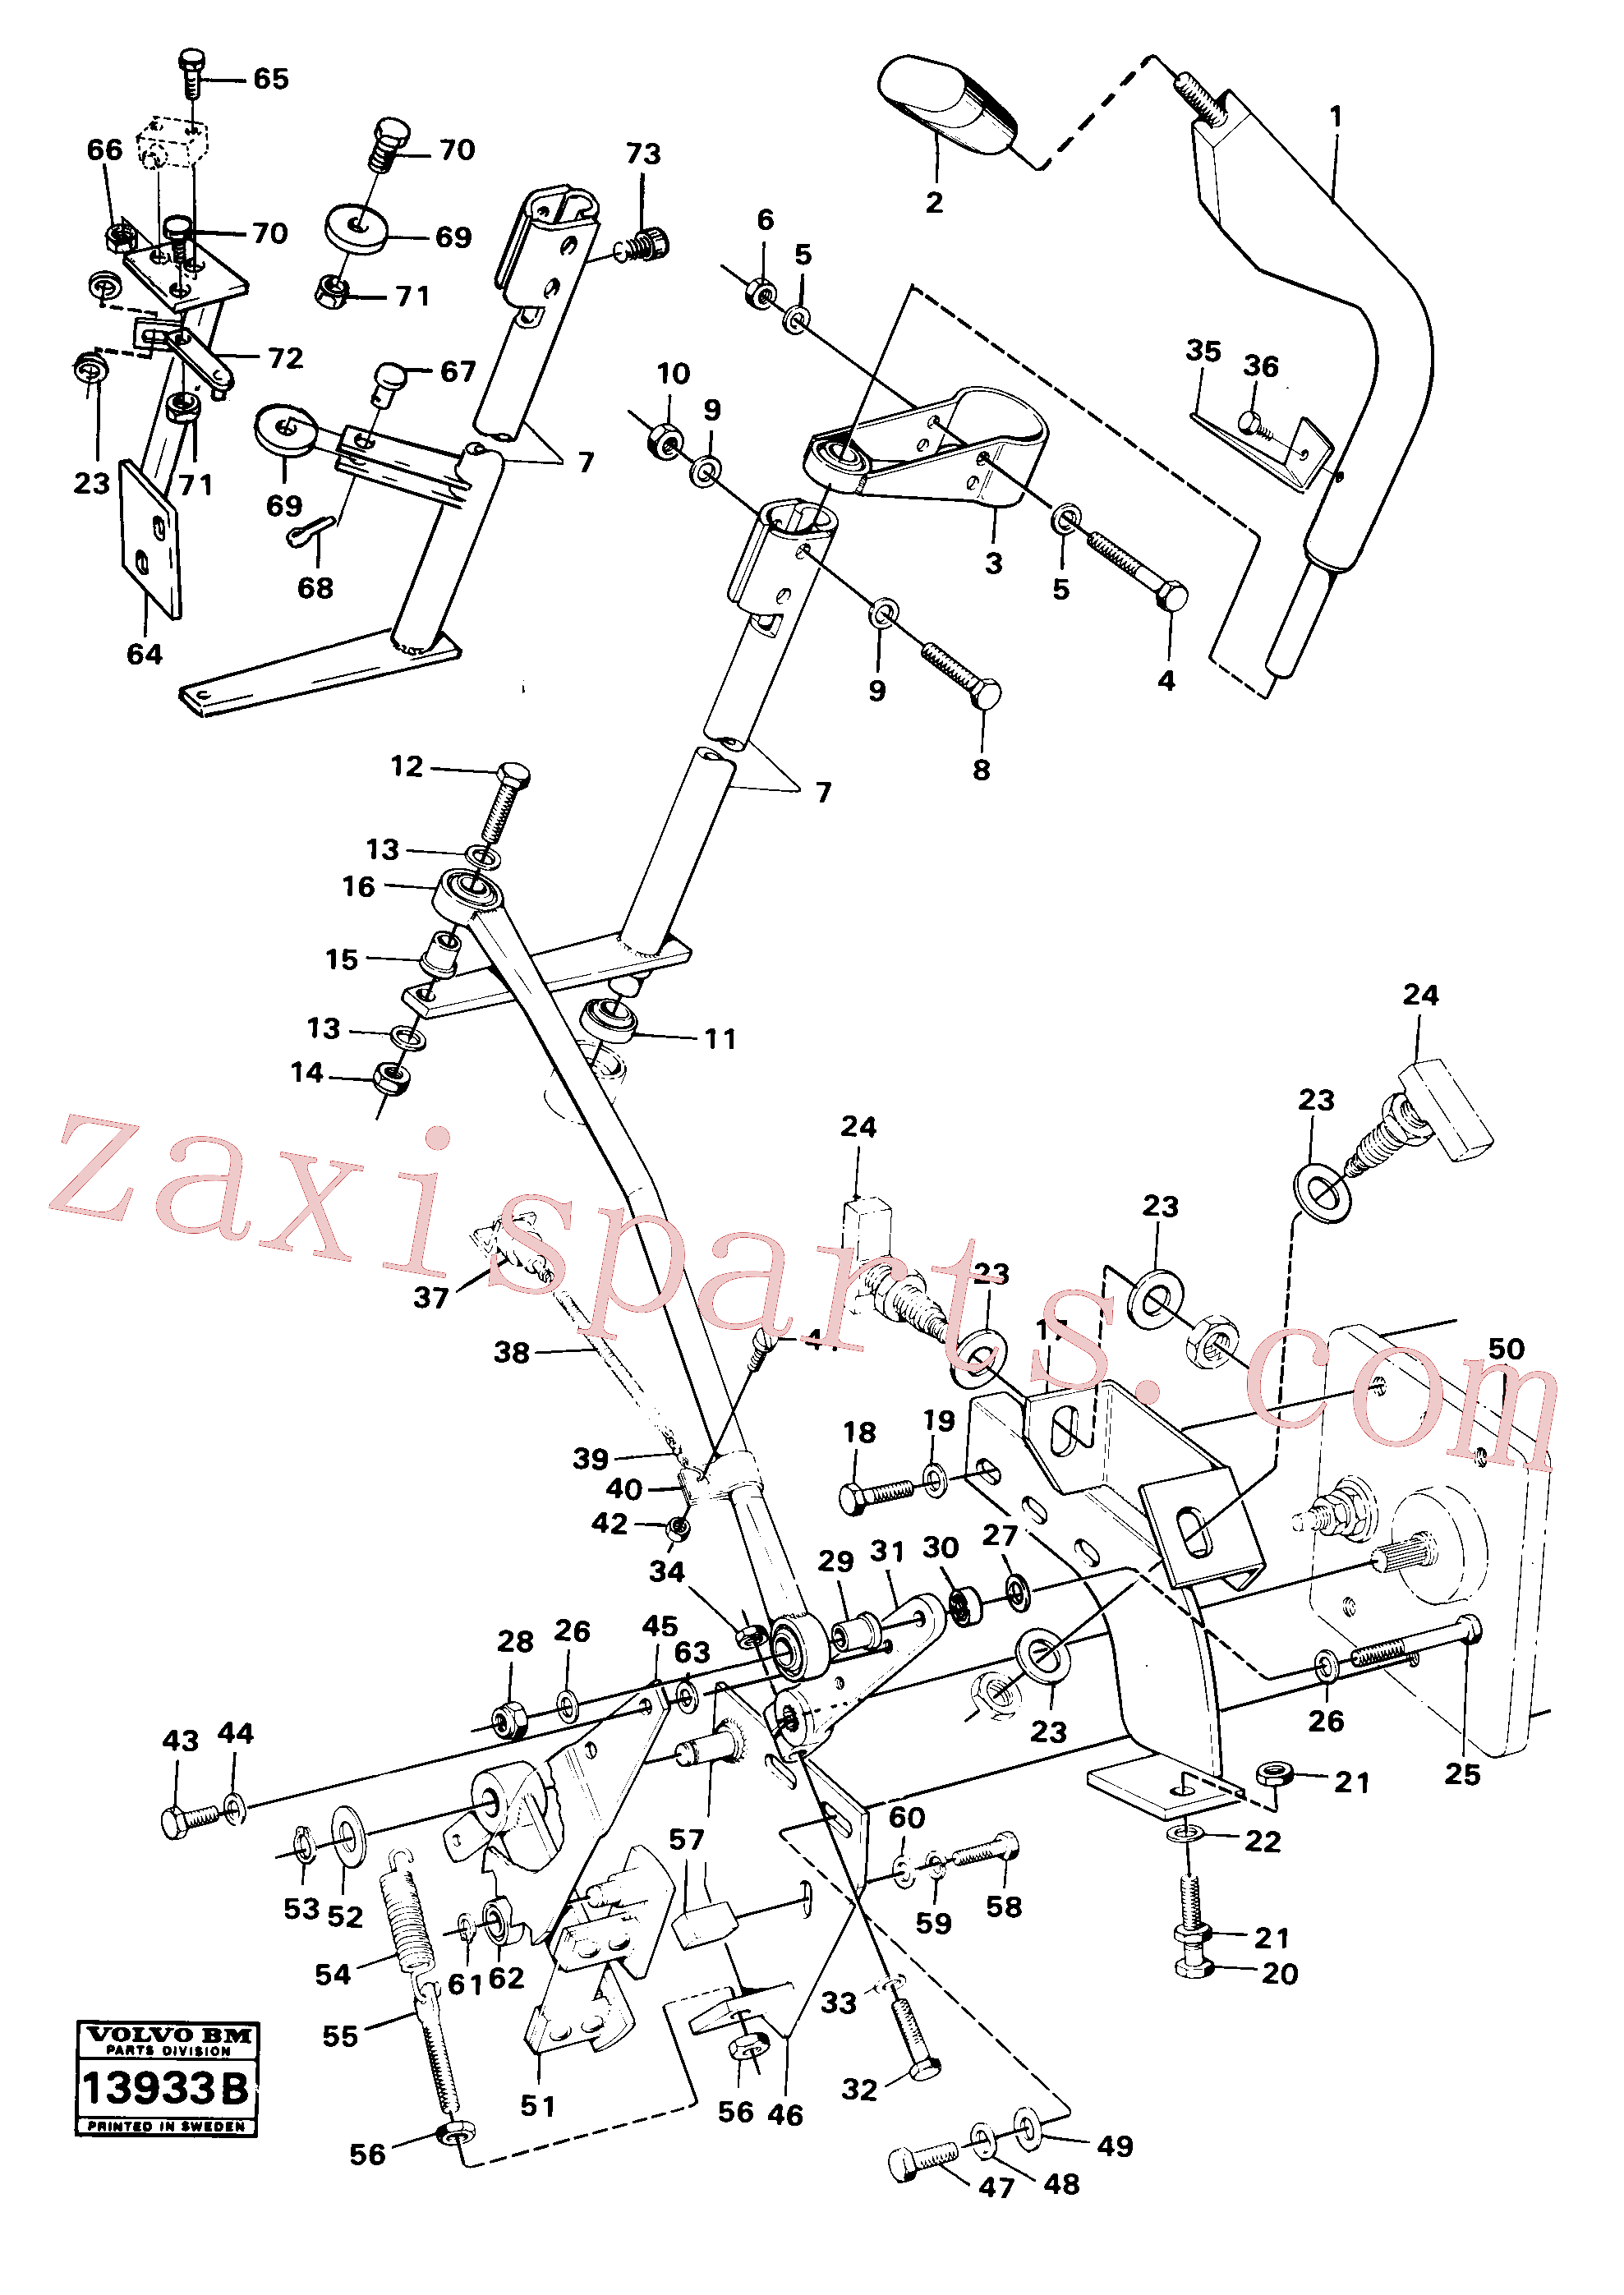 VOE13961170 for Volvo Range selector controls(13933B assembly)